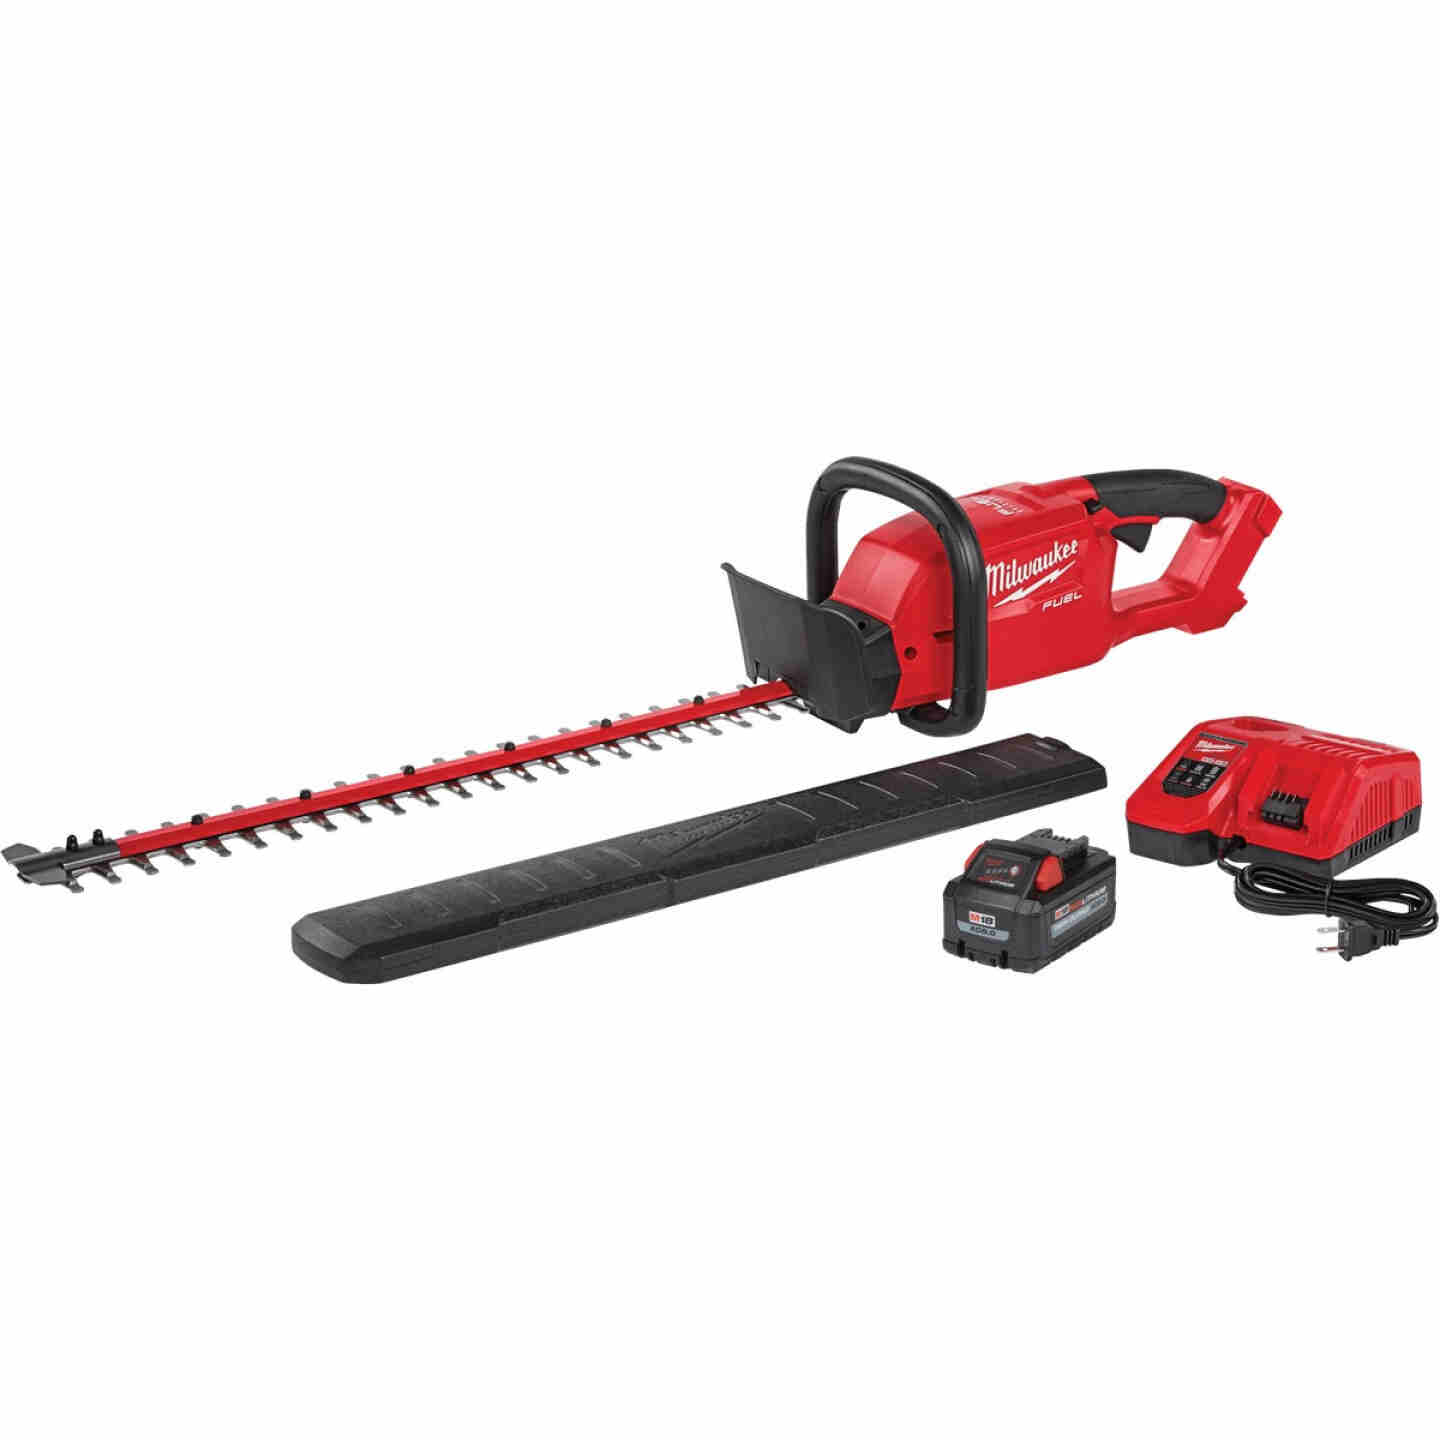 Milwaukee M18 Fuel 24 In. 9A Cordless Hedge Trimmer Kit Image 1